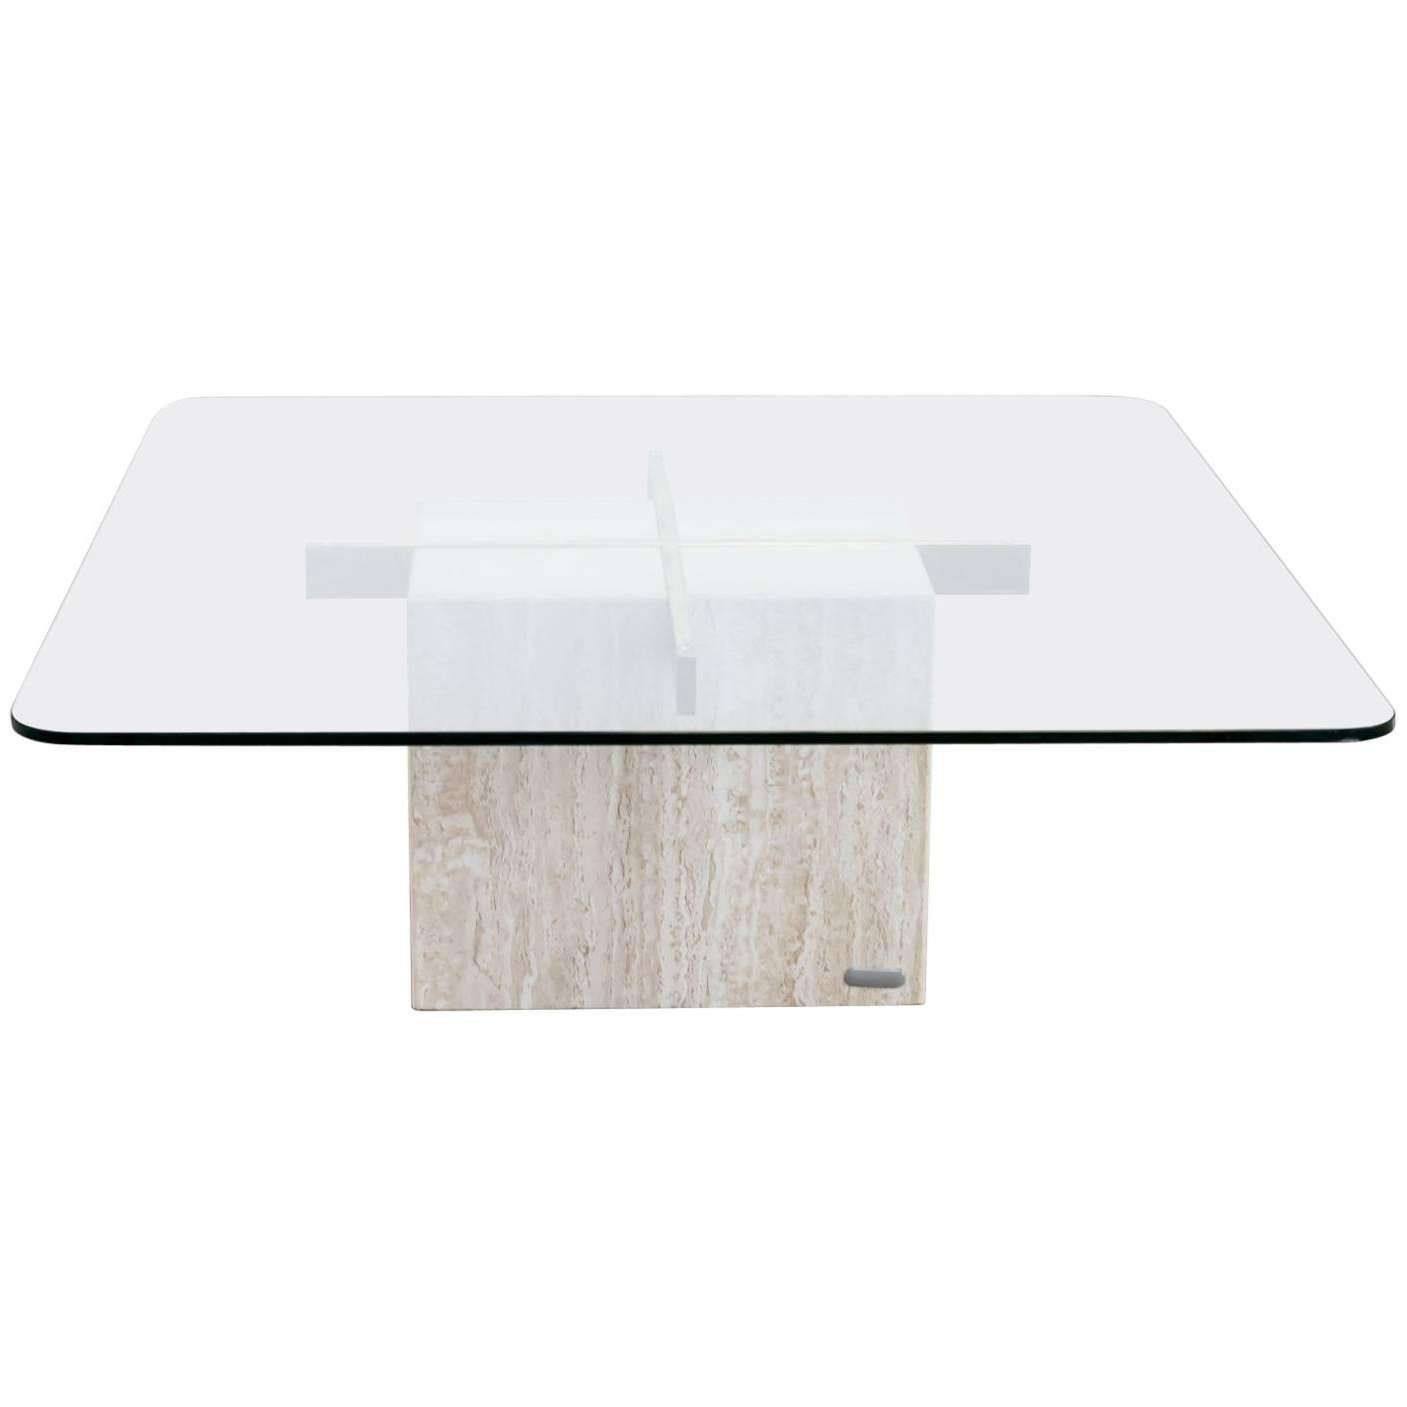 Photos Of Marble Base Gl Top Coffee Table Showing 18 20